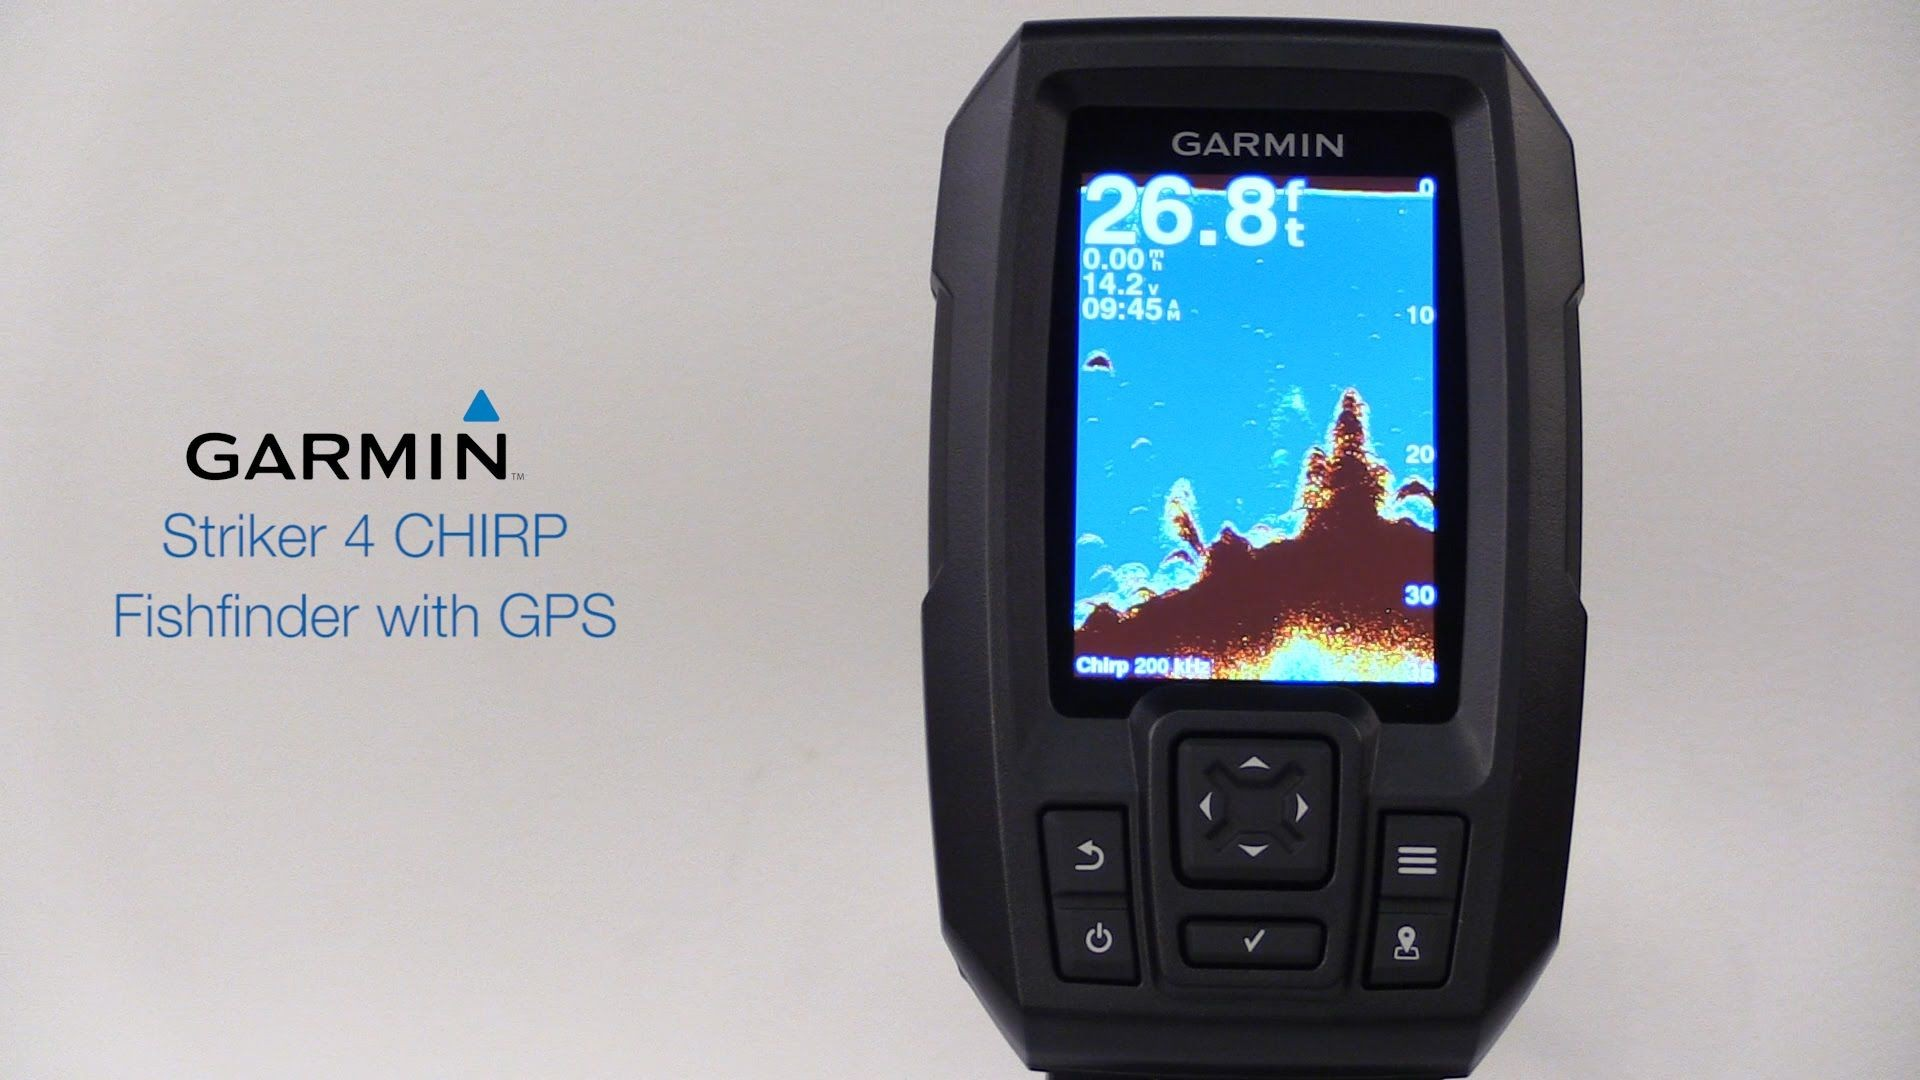 Garmin Striker 4 CHIRP Fishfinder with GPS West Marine Quick Look boats Pinterest